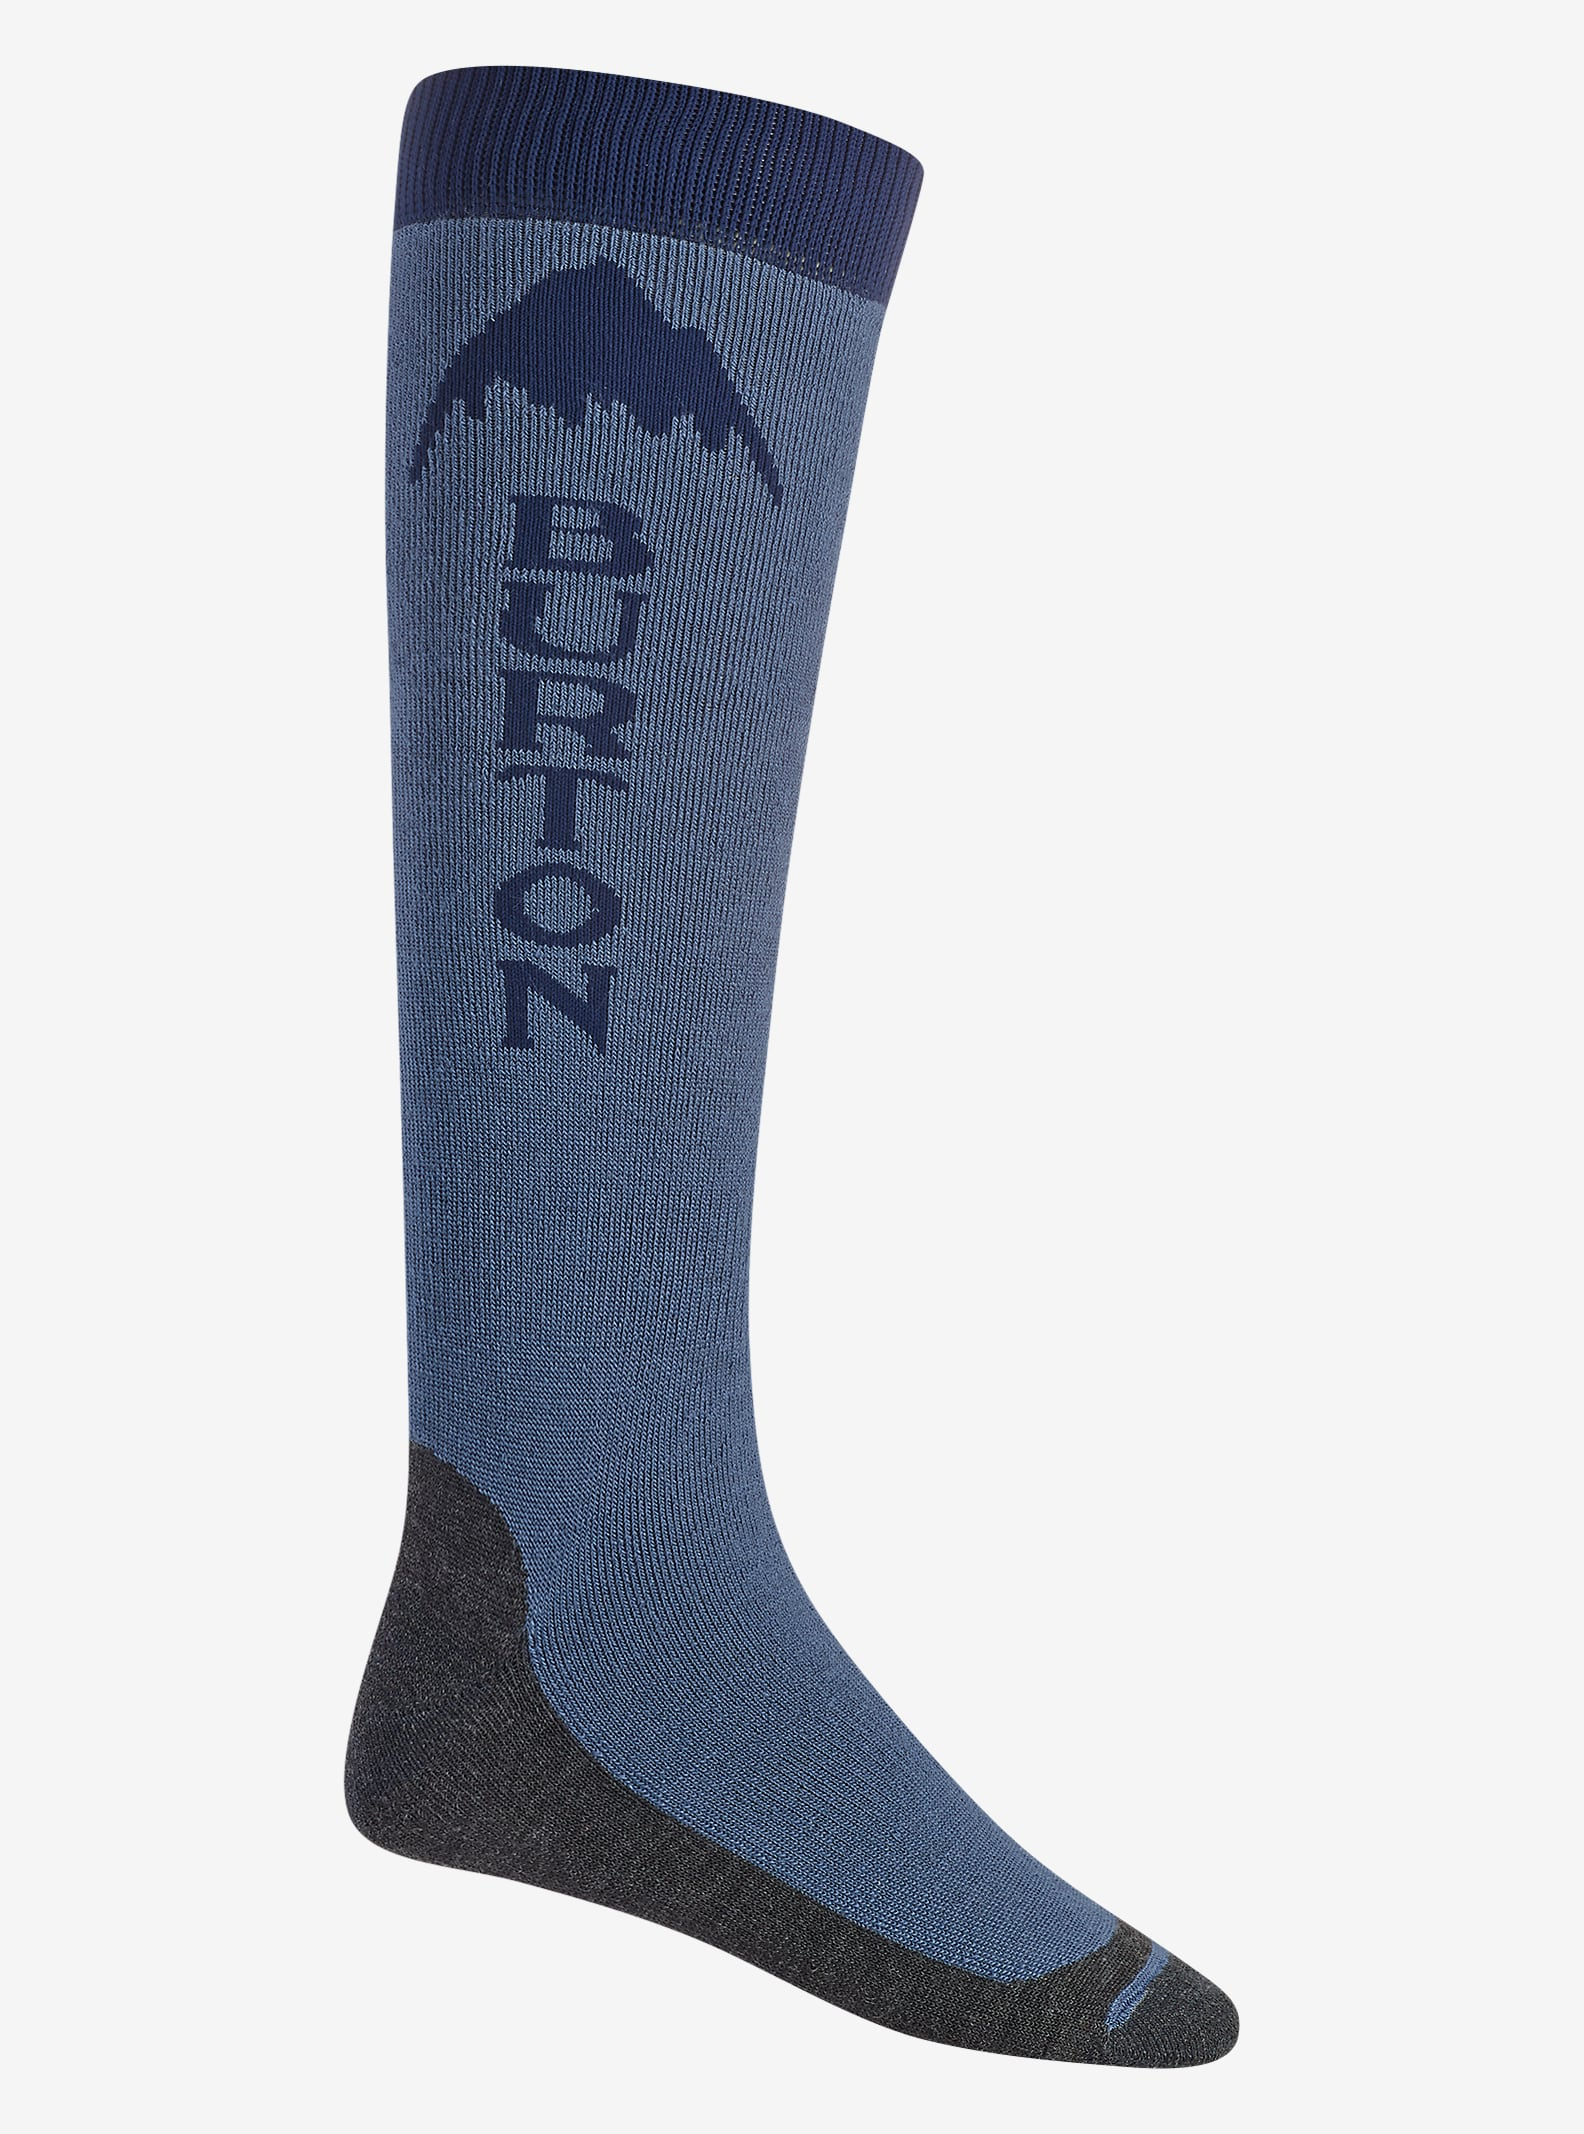 Burton Emblem Sock shown in Washed Blue